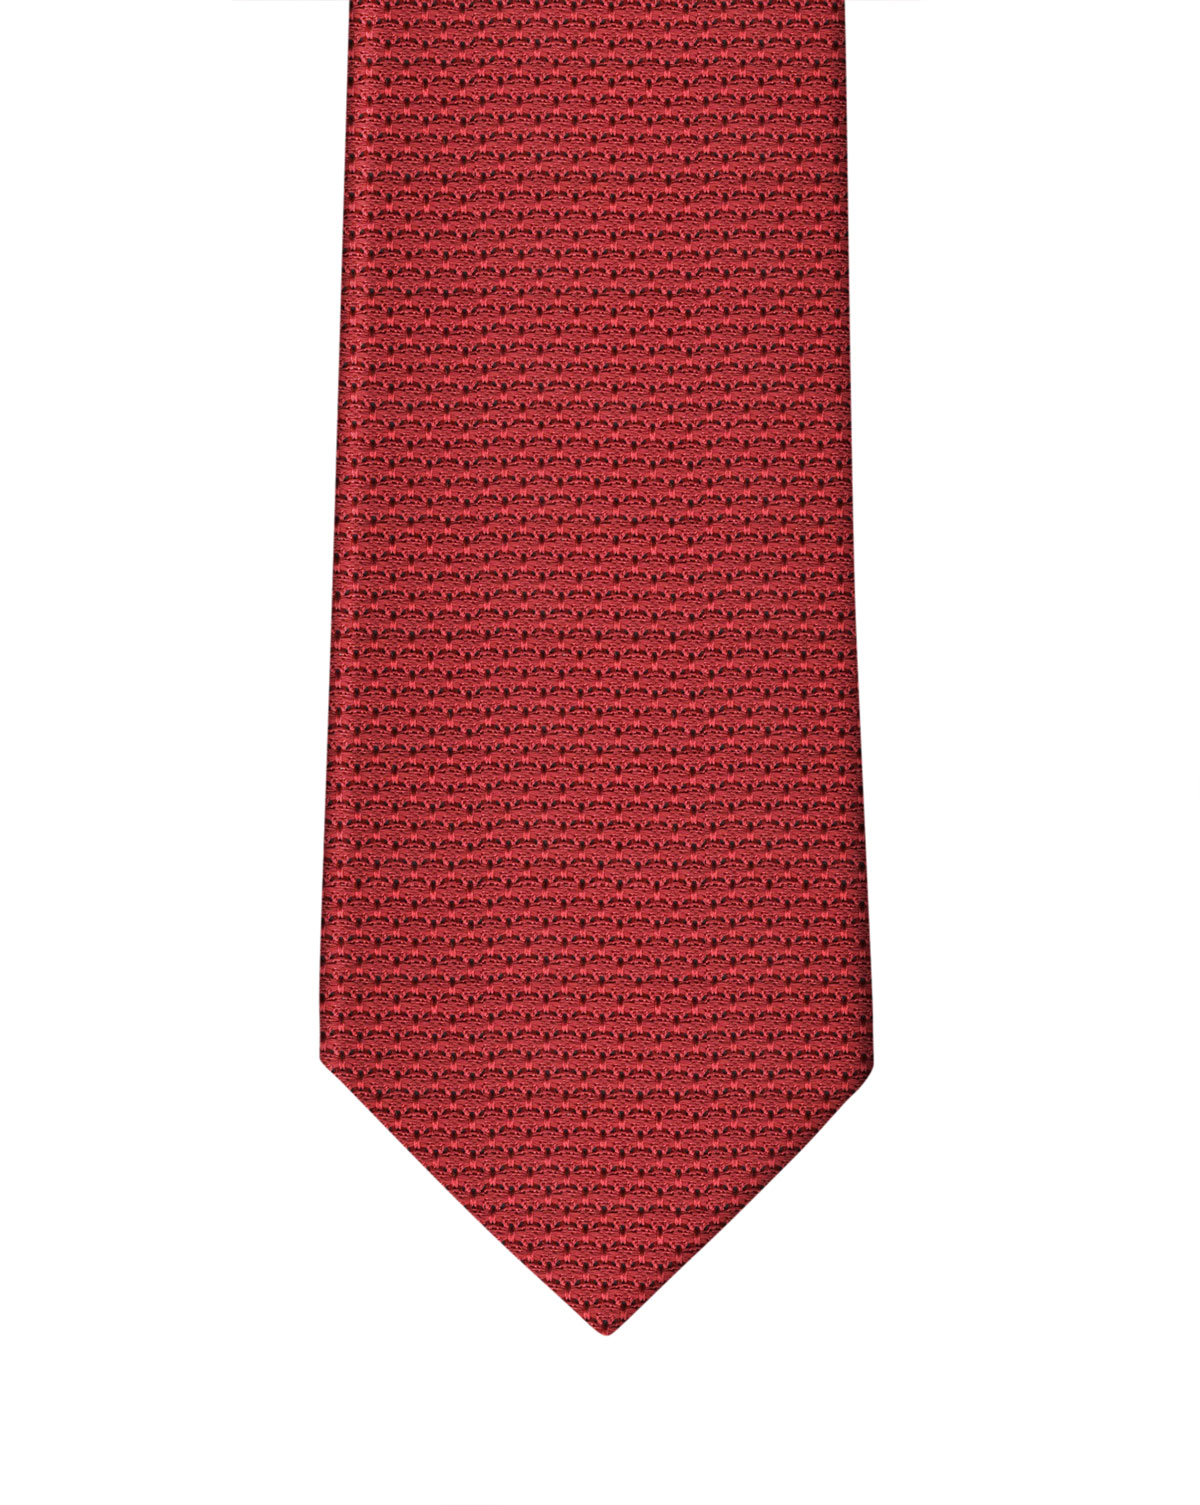 Bright Red Grenadine Necktie